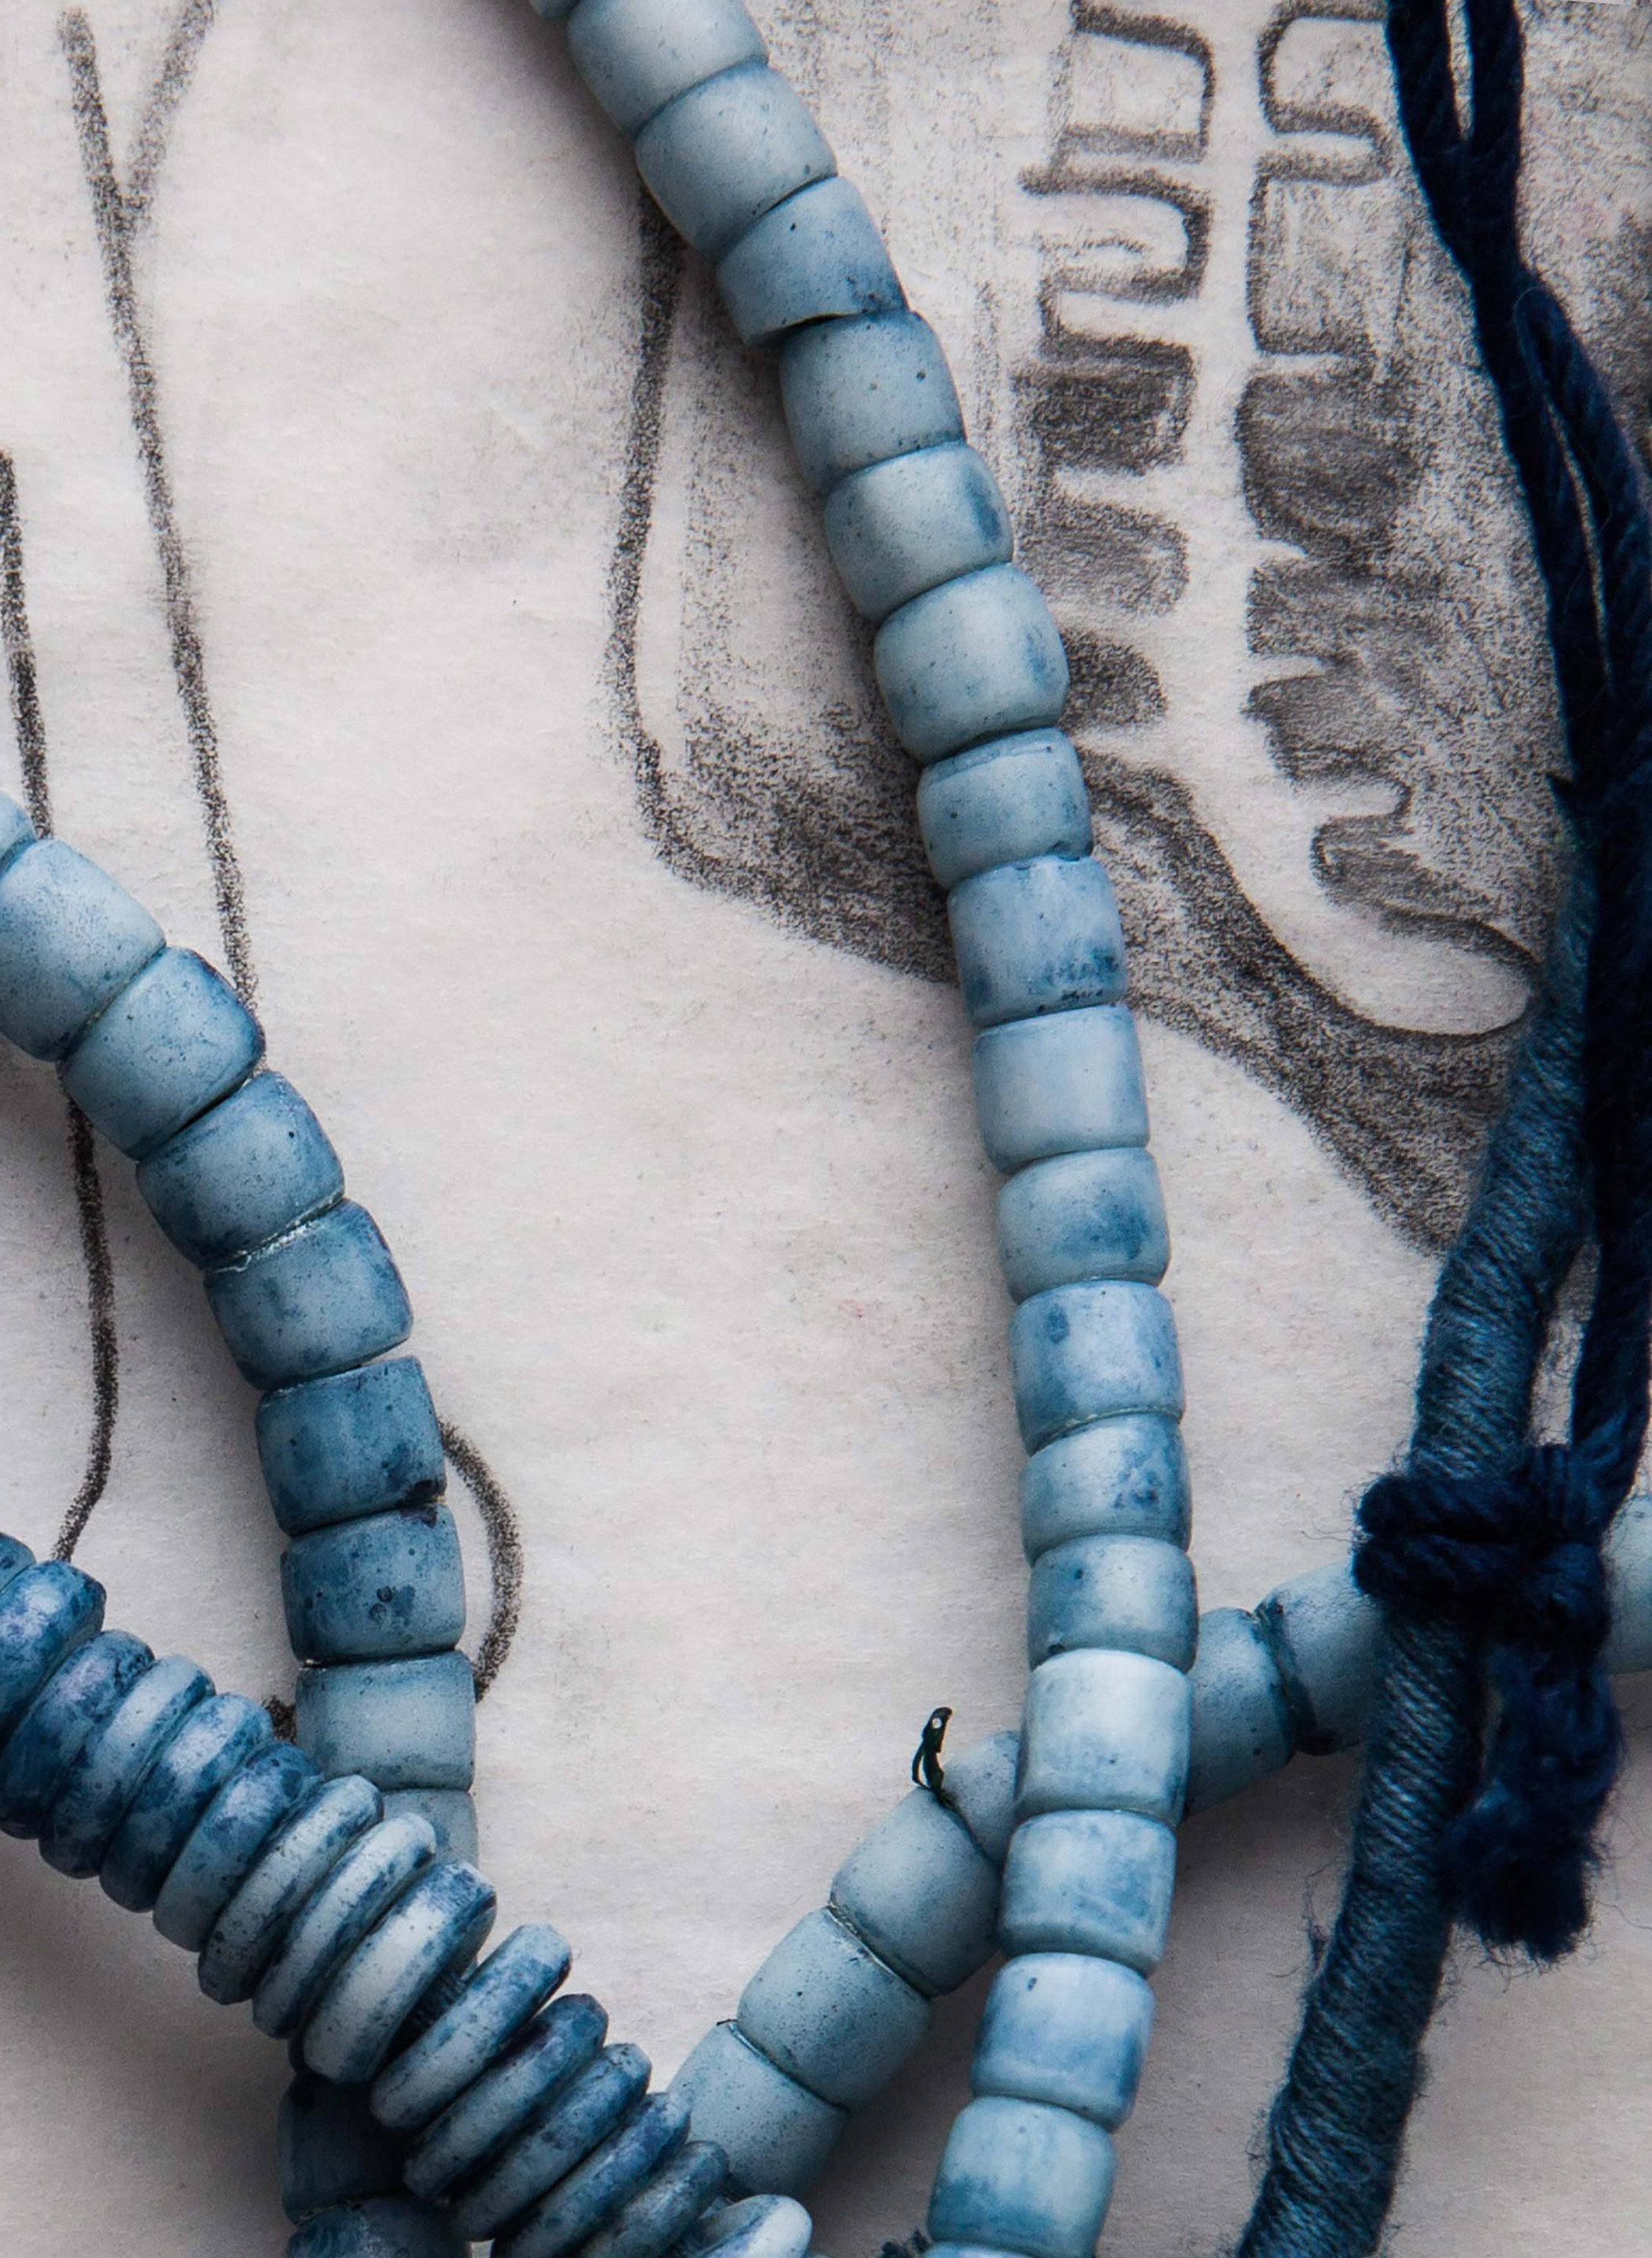 imogene + willie - indigo dyed trade bead necklace